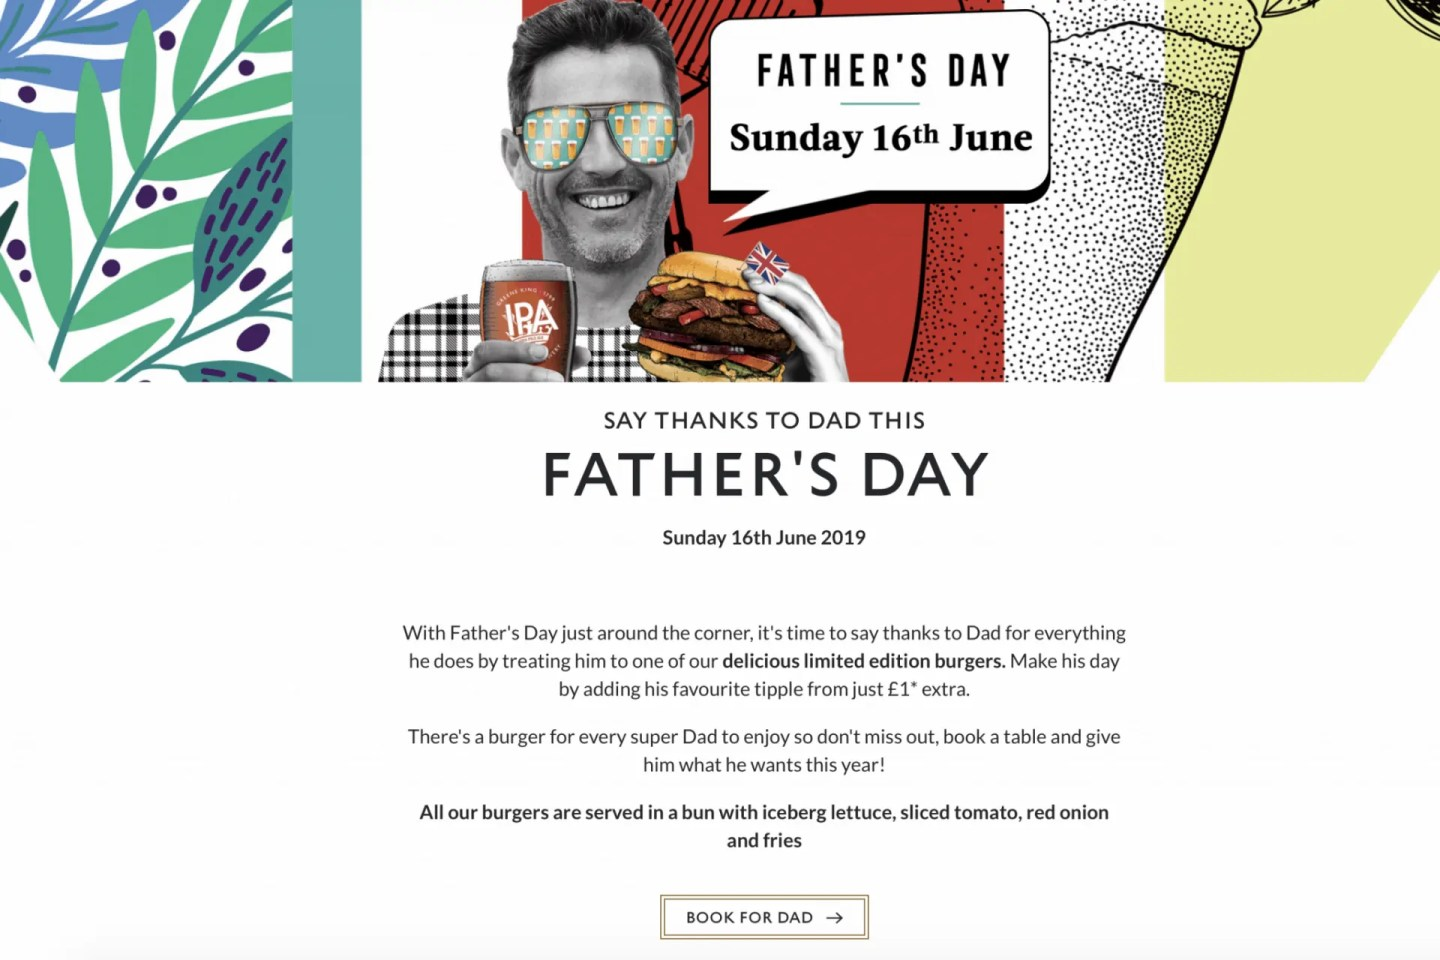 Greene King Fathers Day Offer